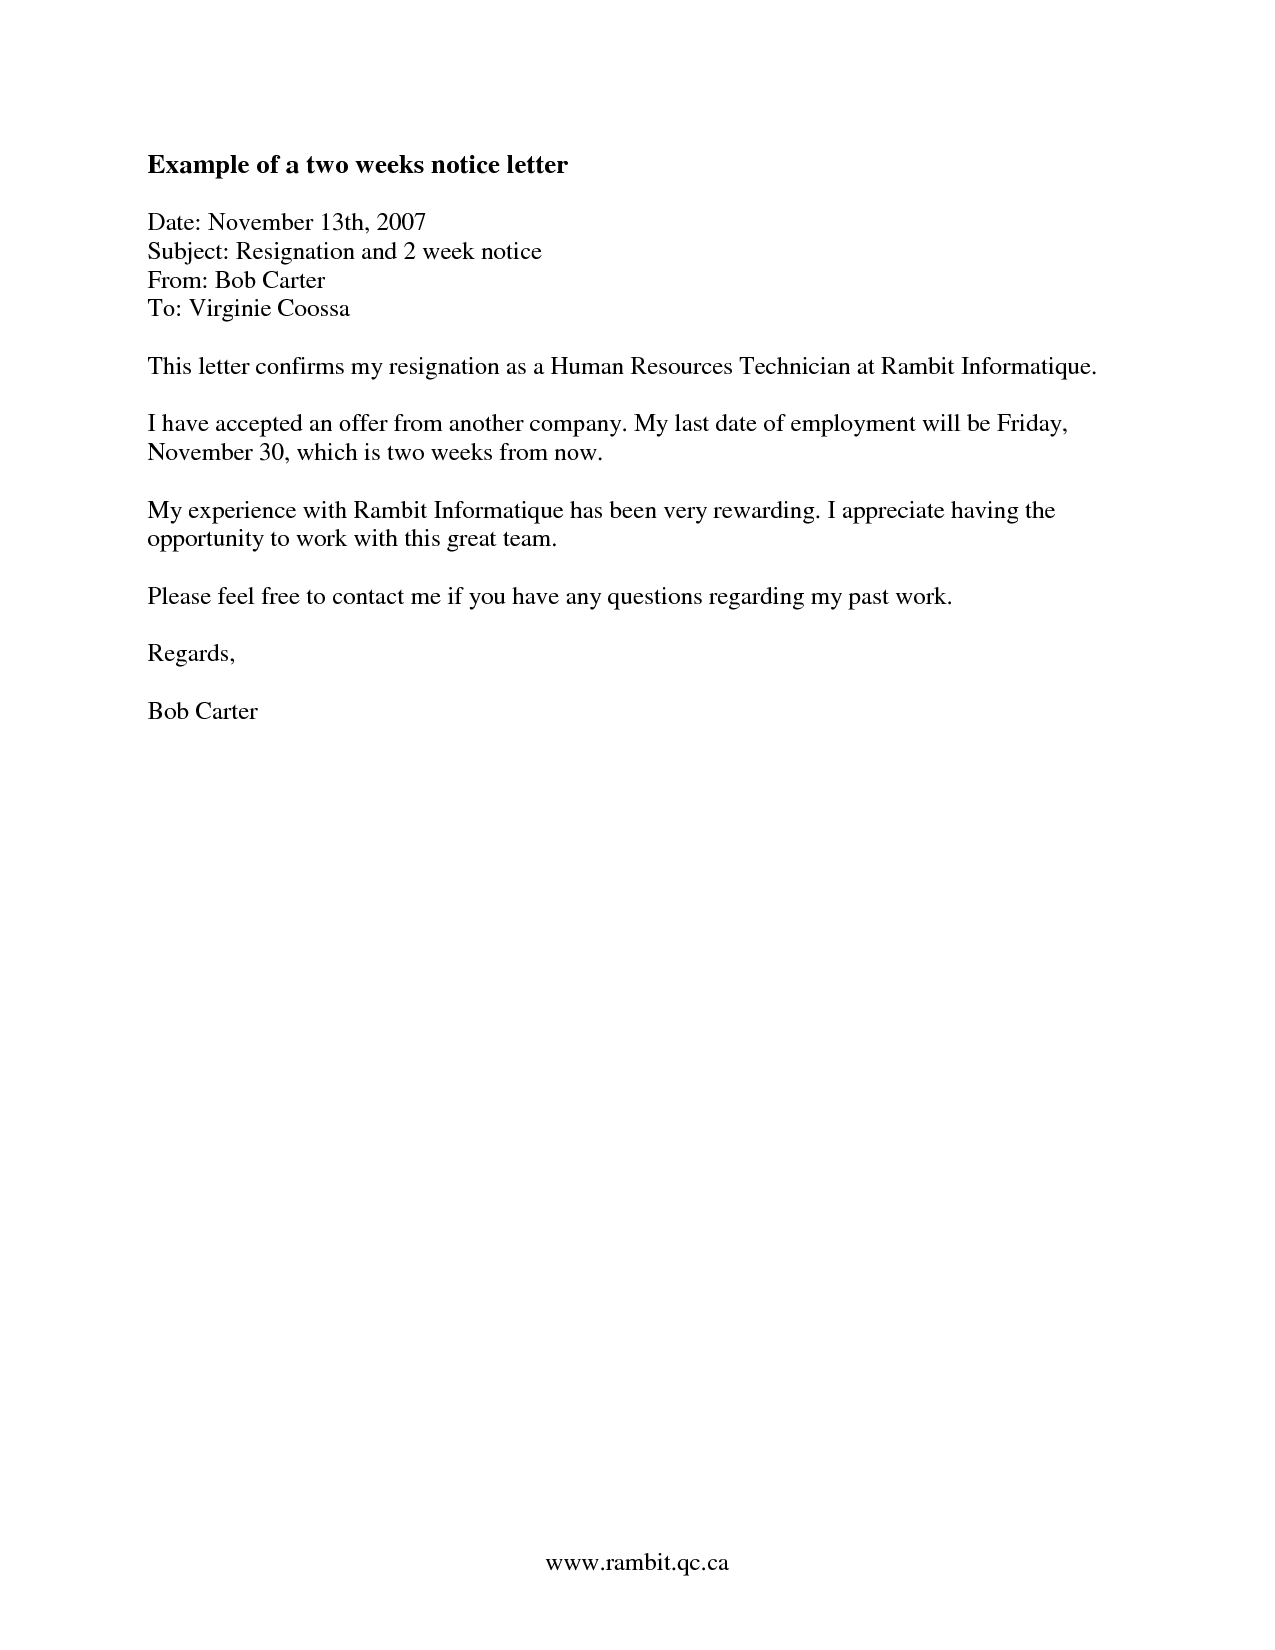 Reference Letter Template for Coworker - How to Find Examples Of Two Week Notice Recipes